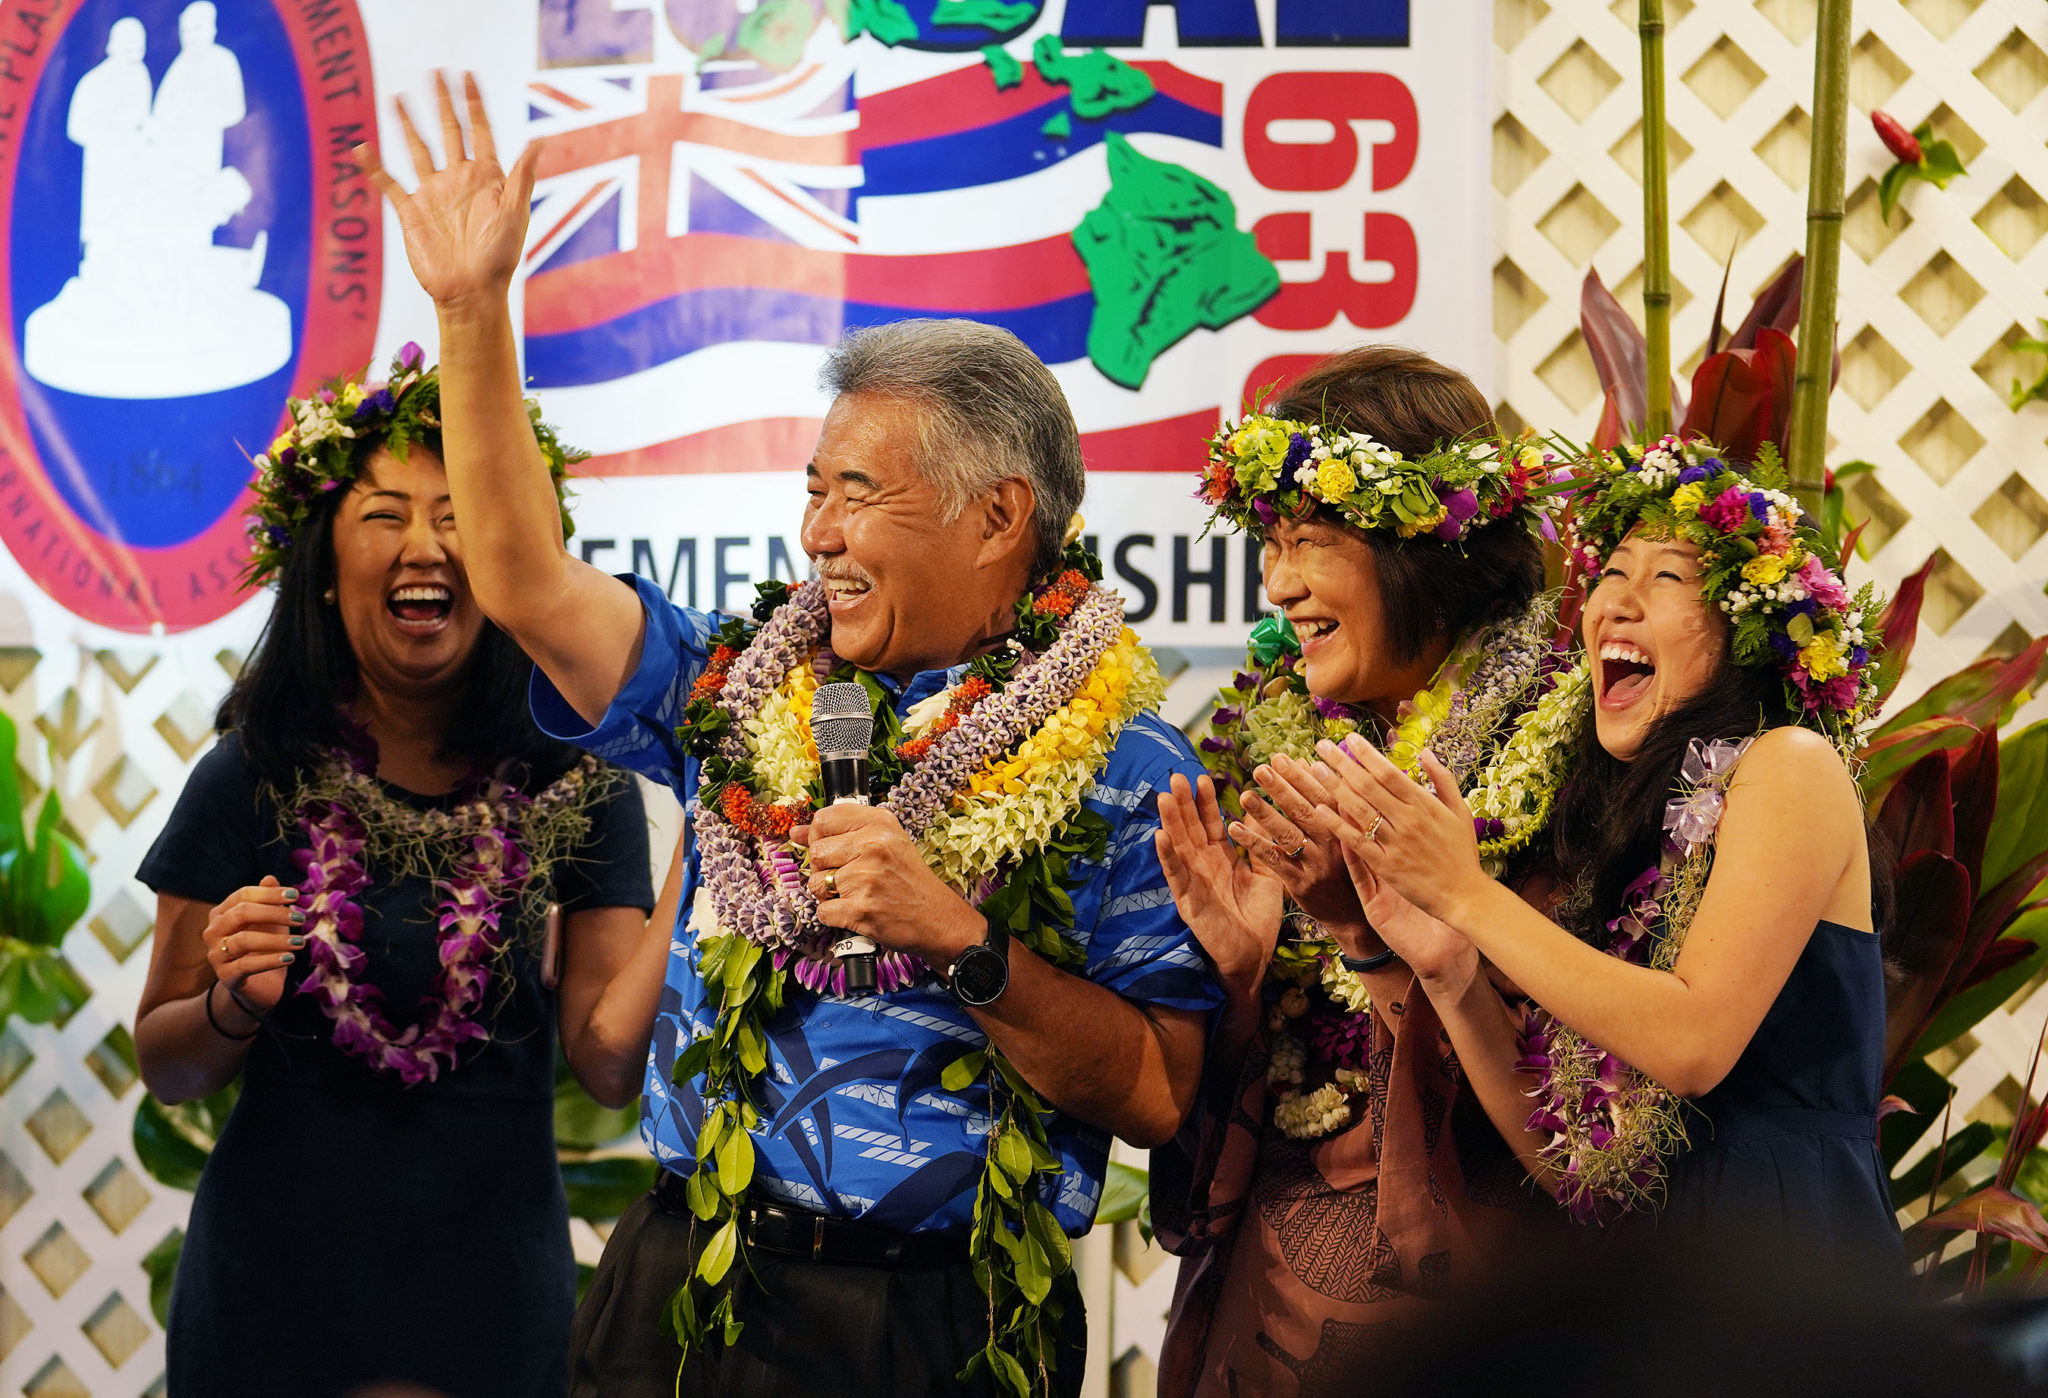 <p><strong>POLITICAL COMEBACK:</strong> Gov. David Ige was significantly behind his challenger, Congresswoman Colleen Hanabusa, earlier in the year but rebounded after helping to manage the disasters on Kauai and the Big Island. He celebrated with his family after winning the Democratic primary Aug. 11, and won re-election in November. / Cory Lum</p>